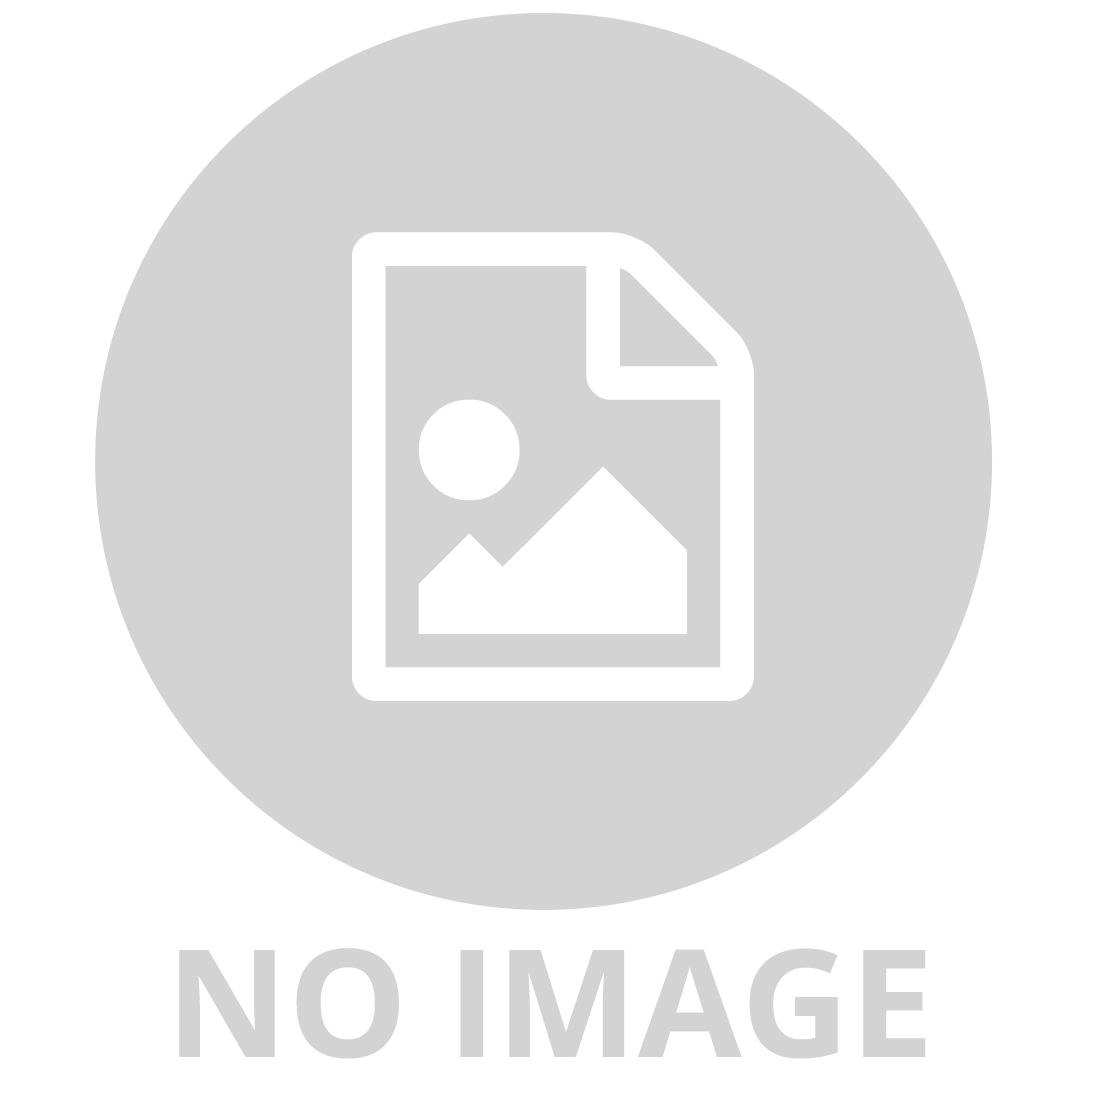 BRUDER 1:16 CATERPILLAR VIBRATING SOIL COMPACTOR WITH LEVELING BLADE